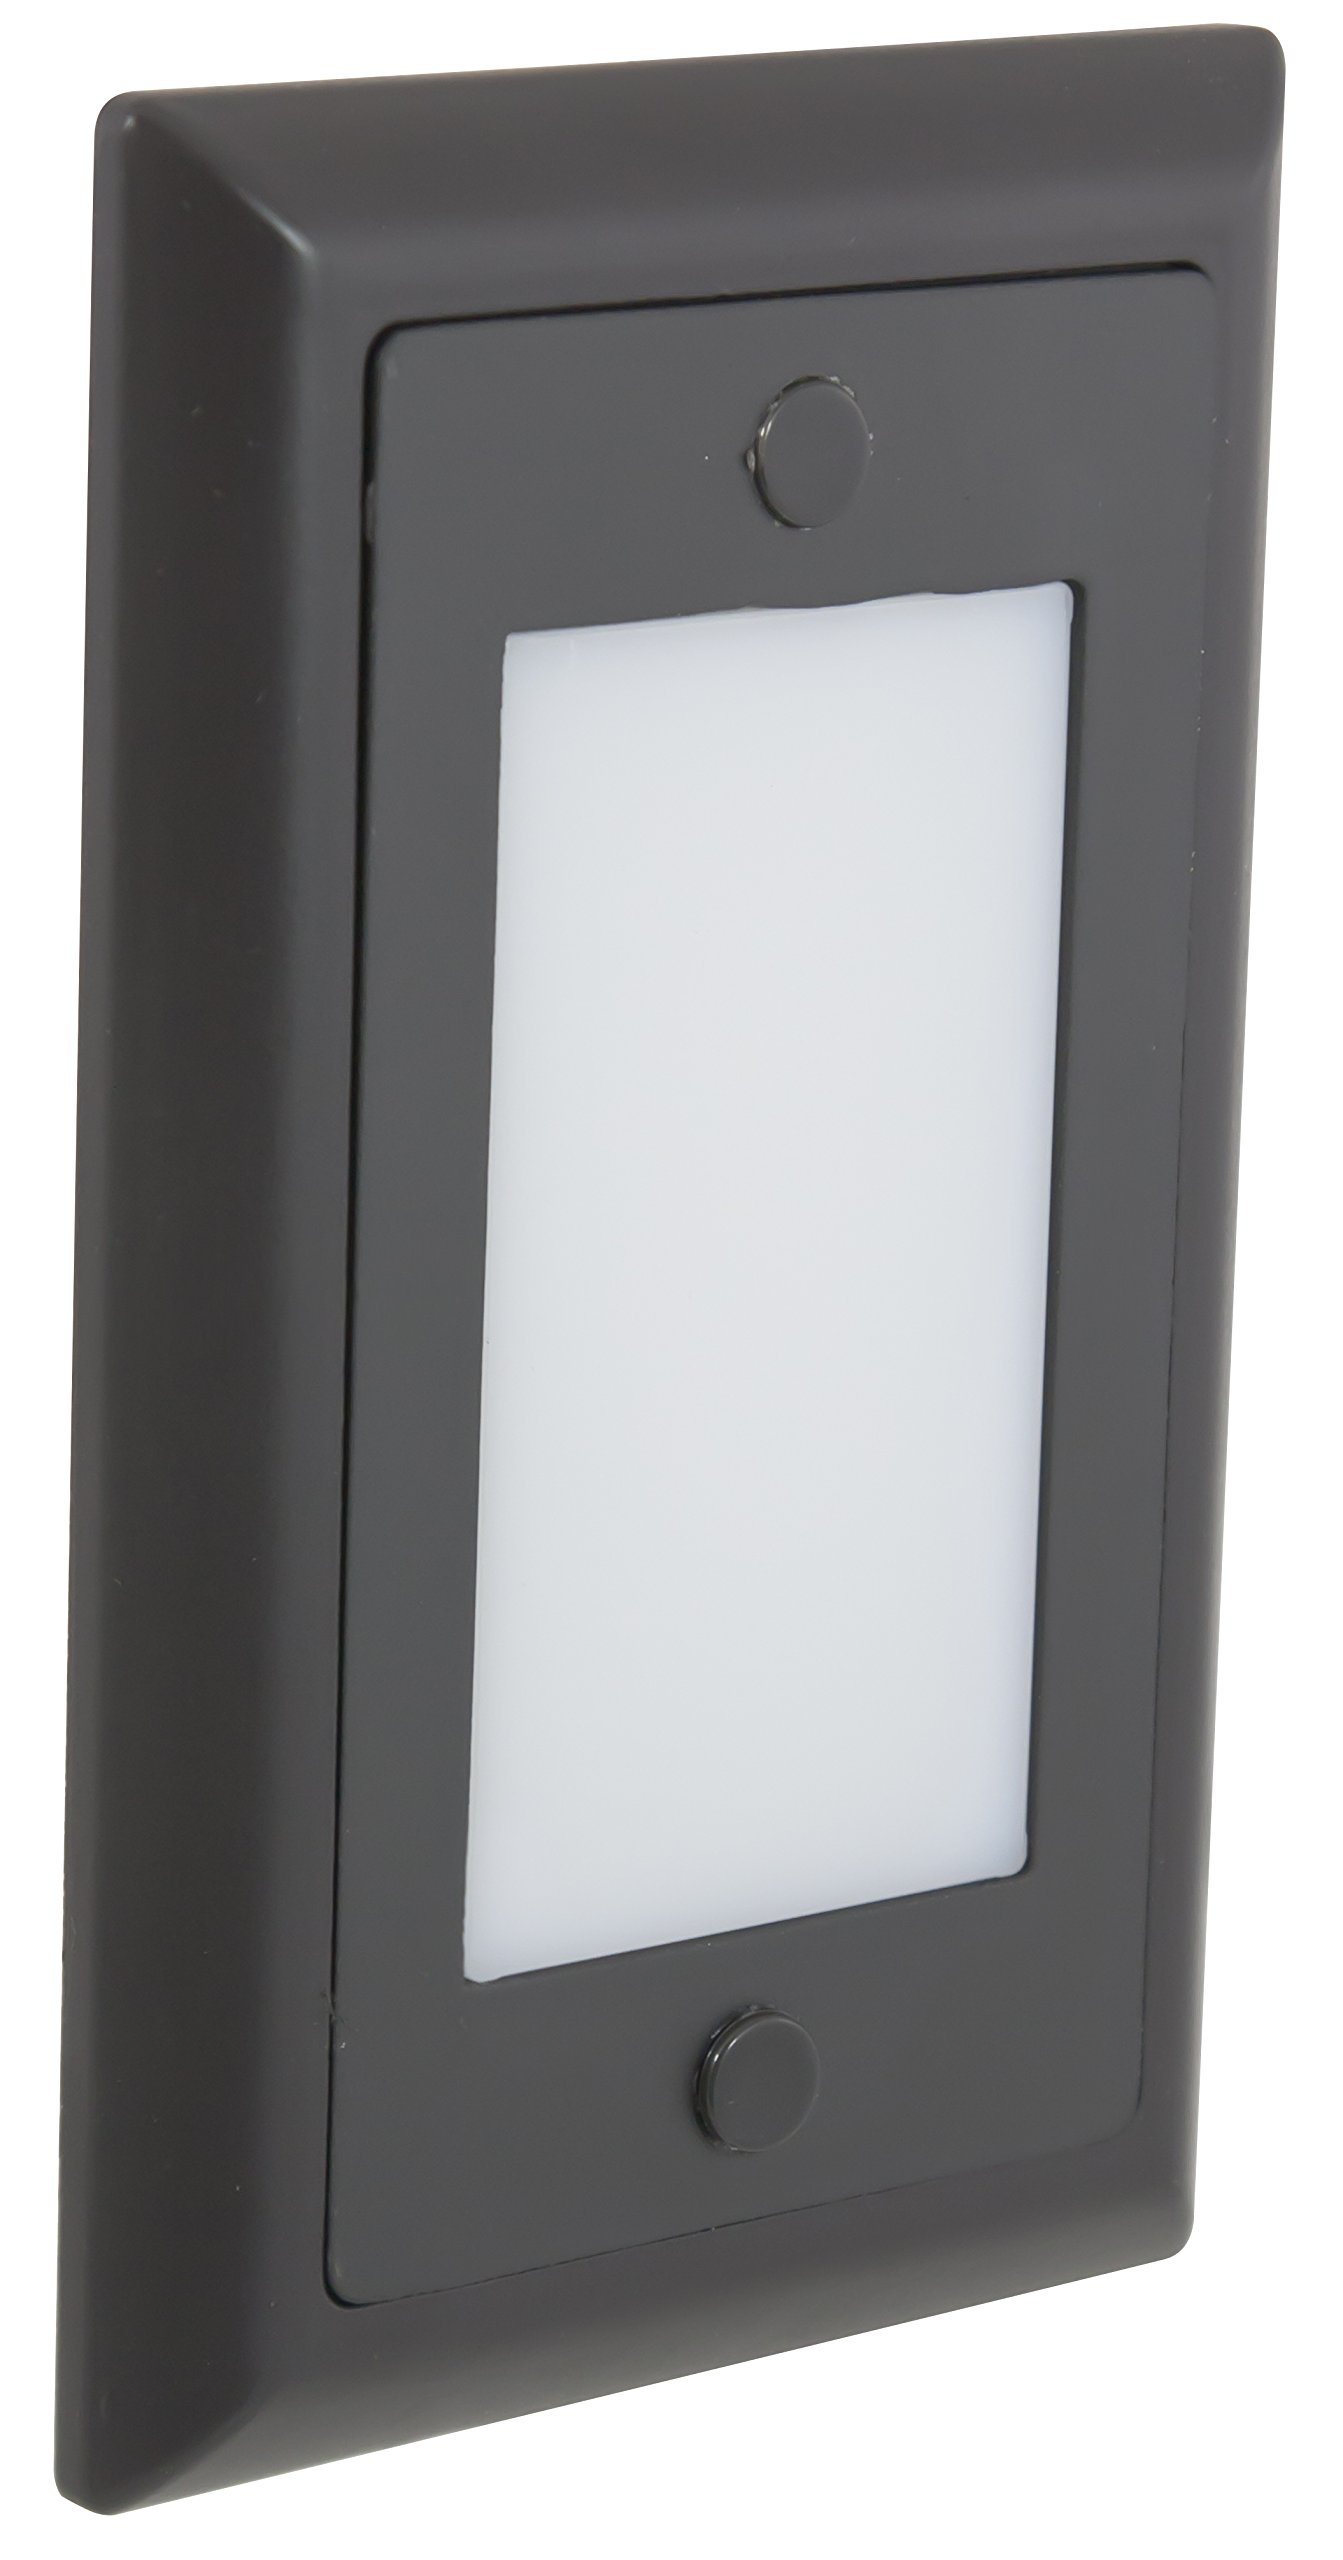 American Lighting SGL-SM-DB Smooth Faceplate for LED Step Light, Dark Bronze